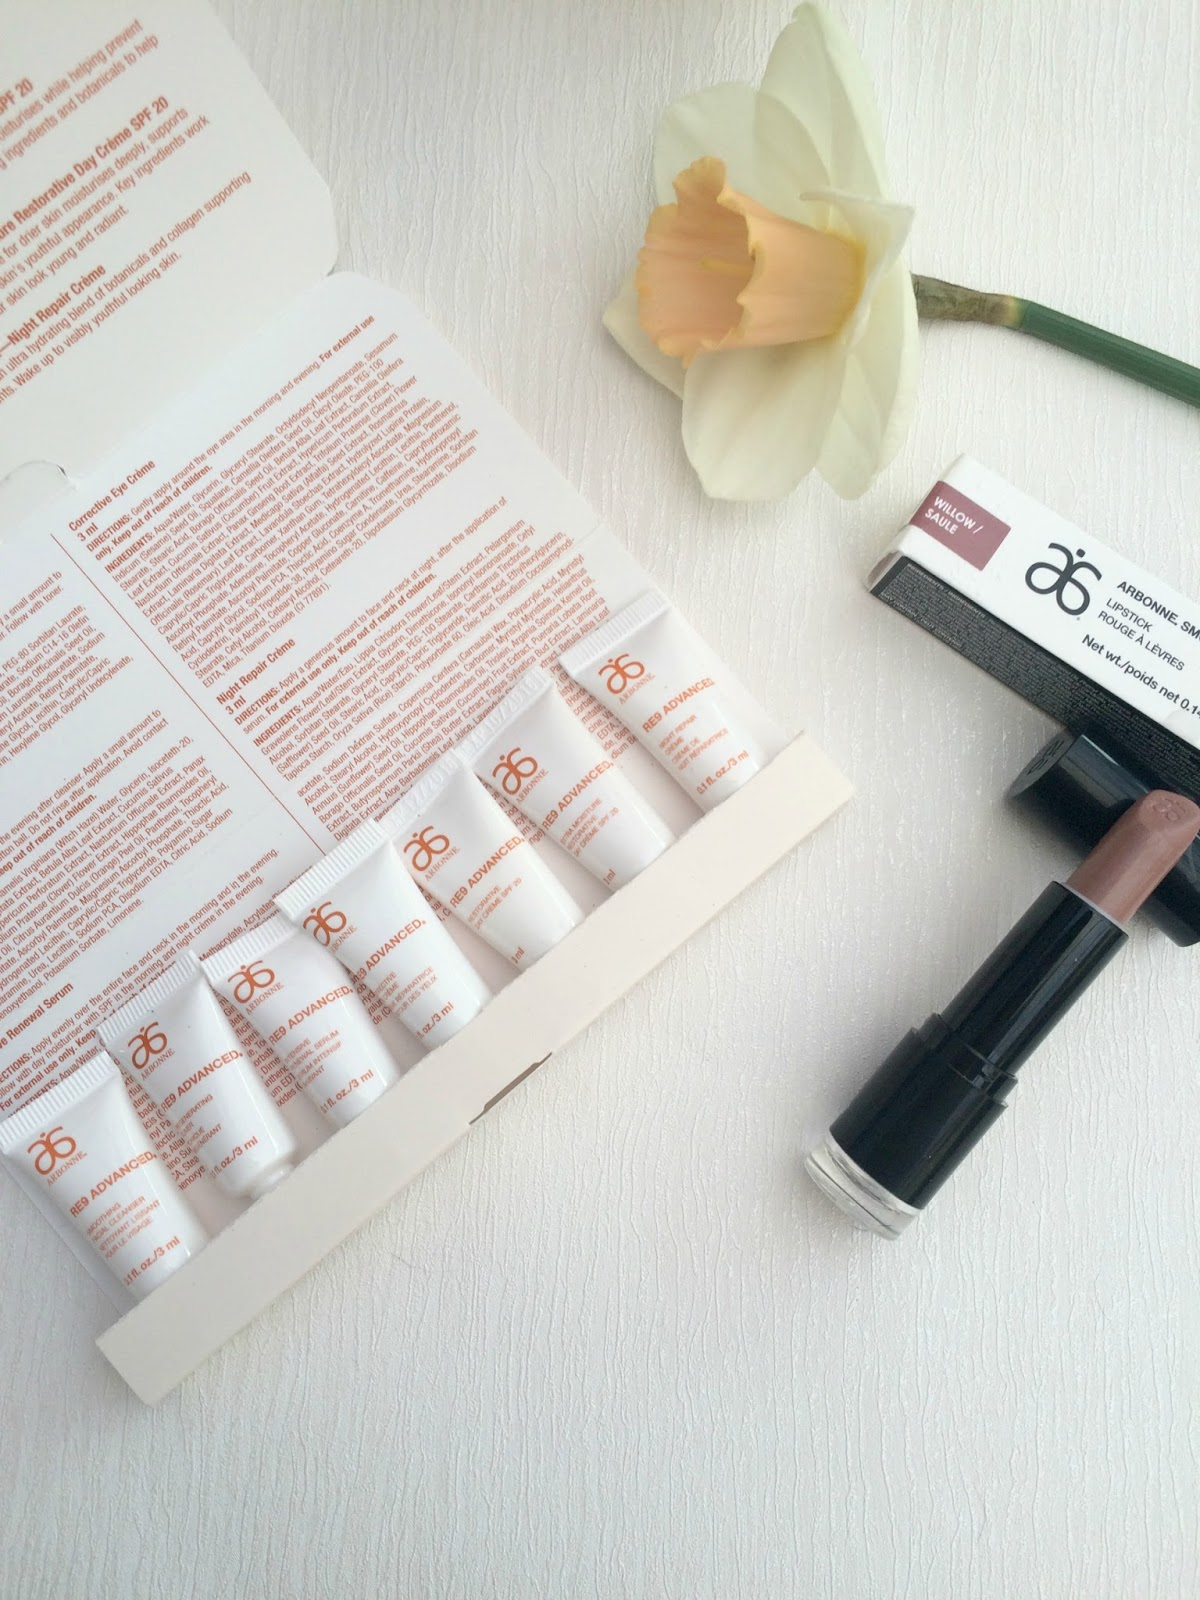 Arbonne skincare and makeup review